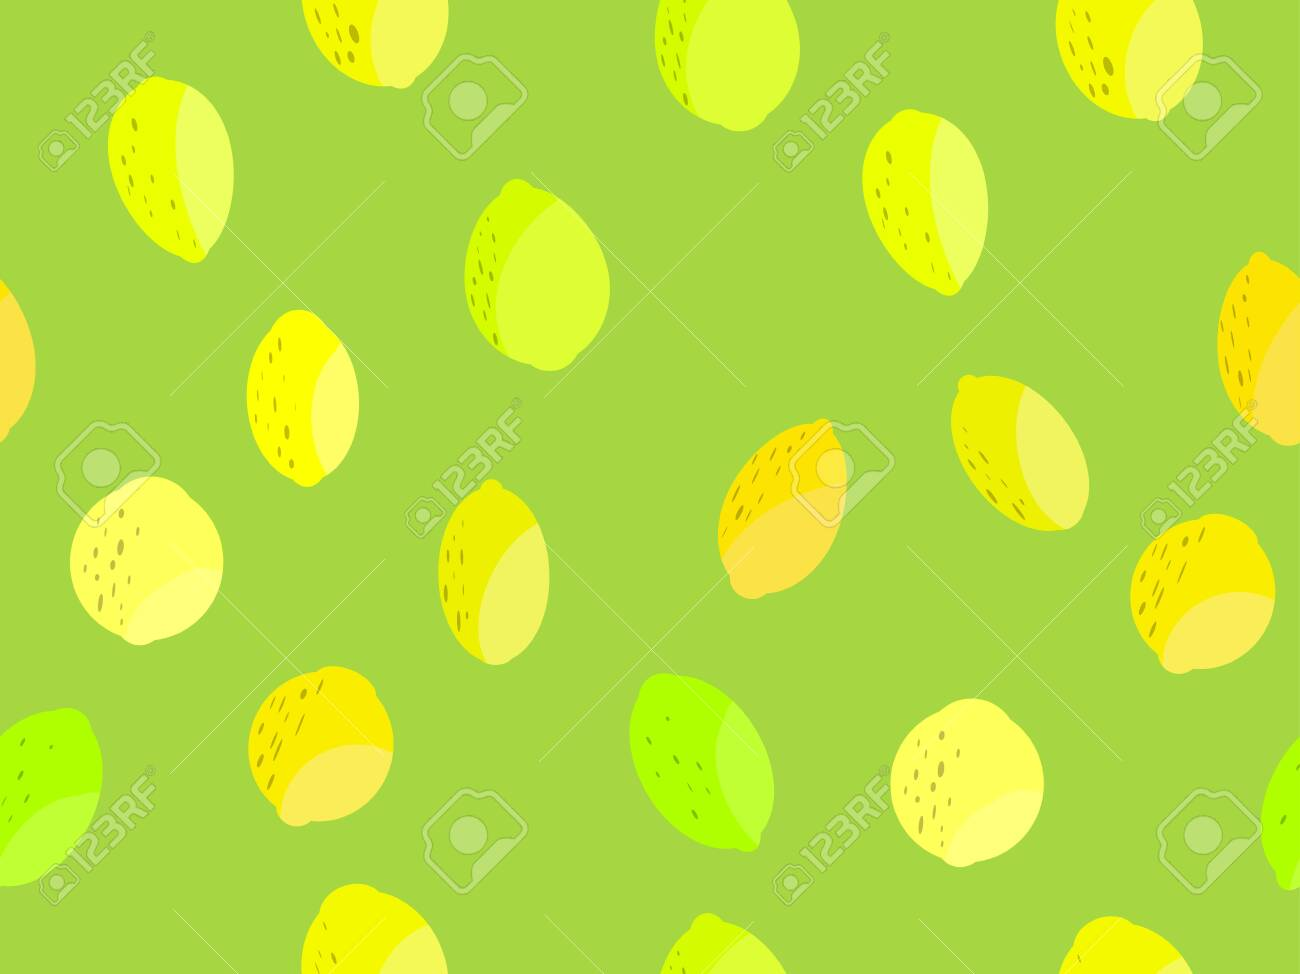 Lemon Seamless Pattern Yellow And Green Lemons And Lime